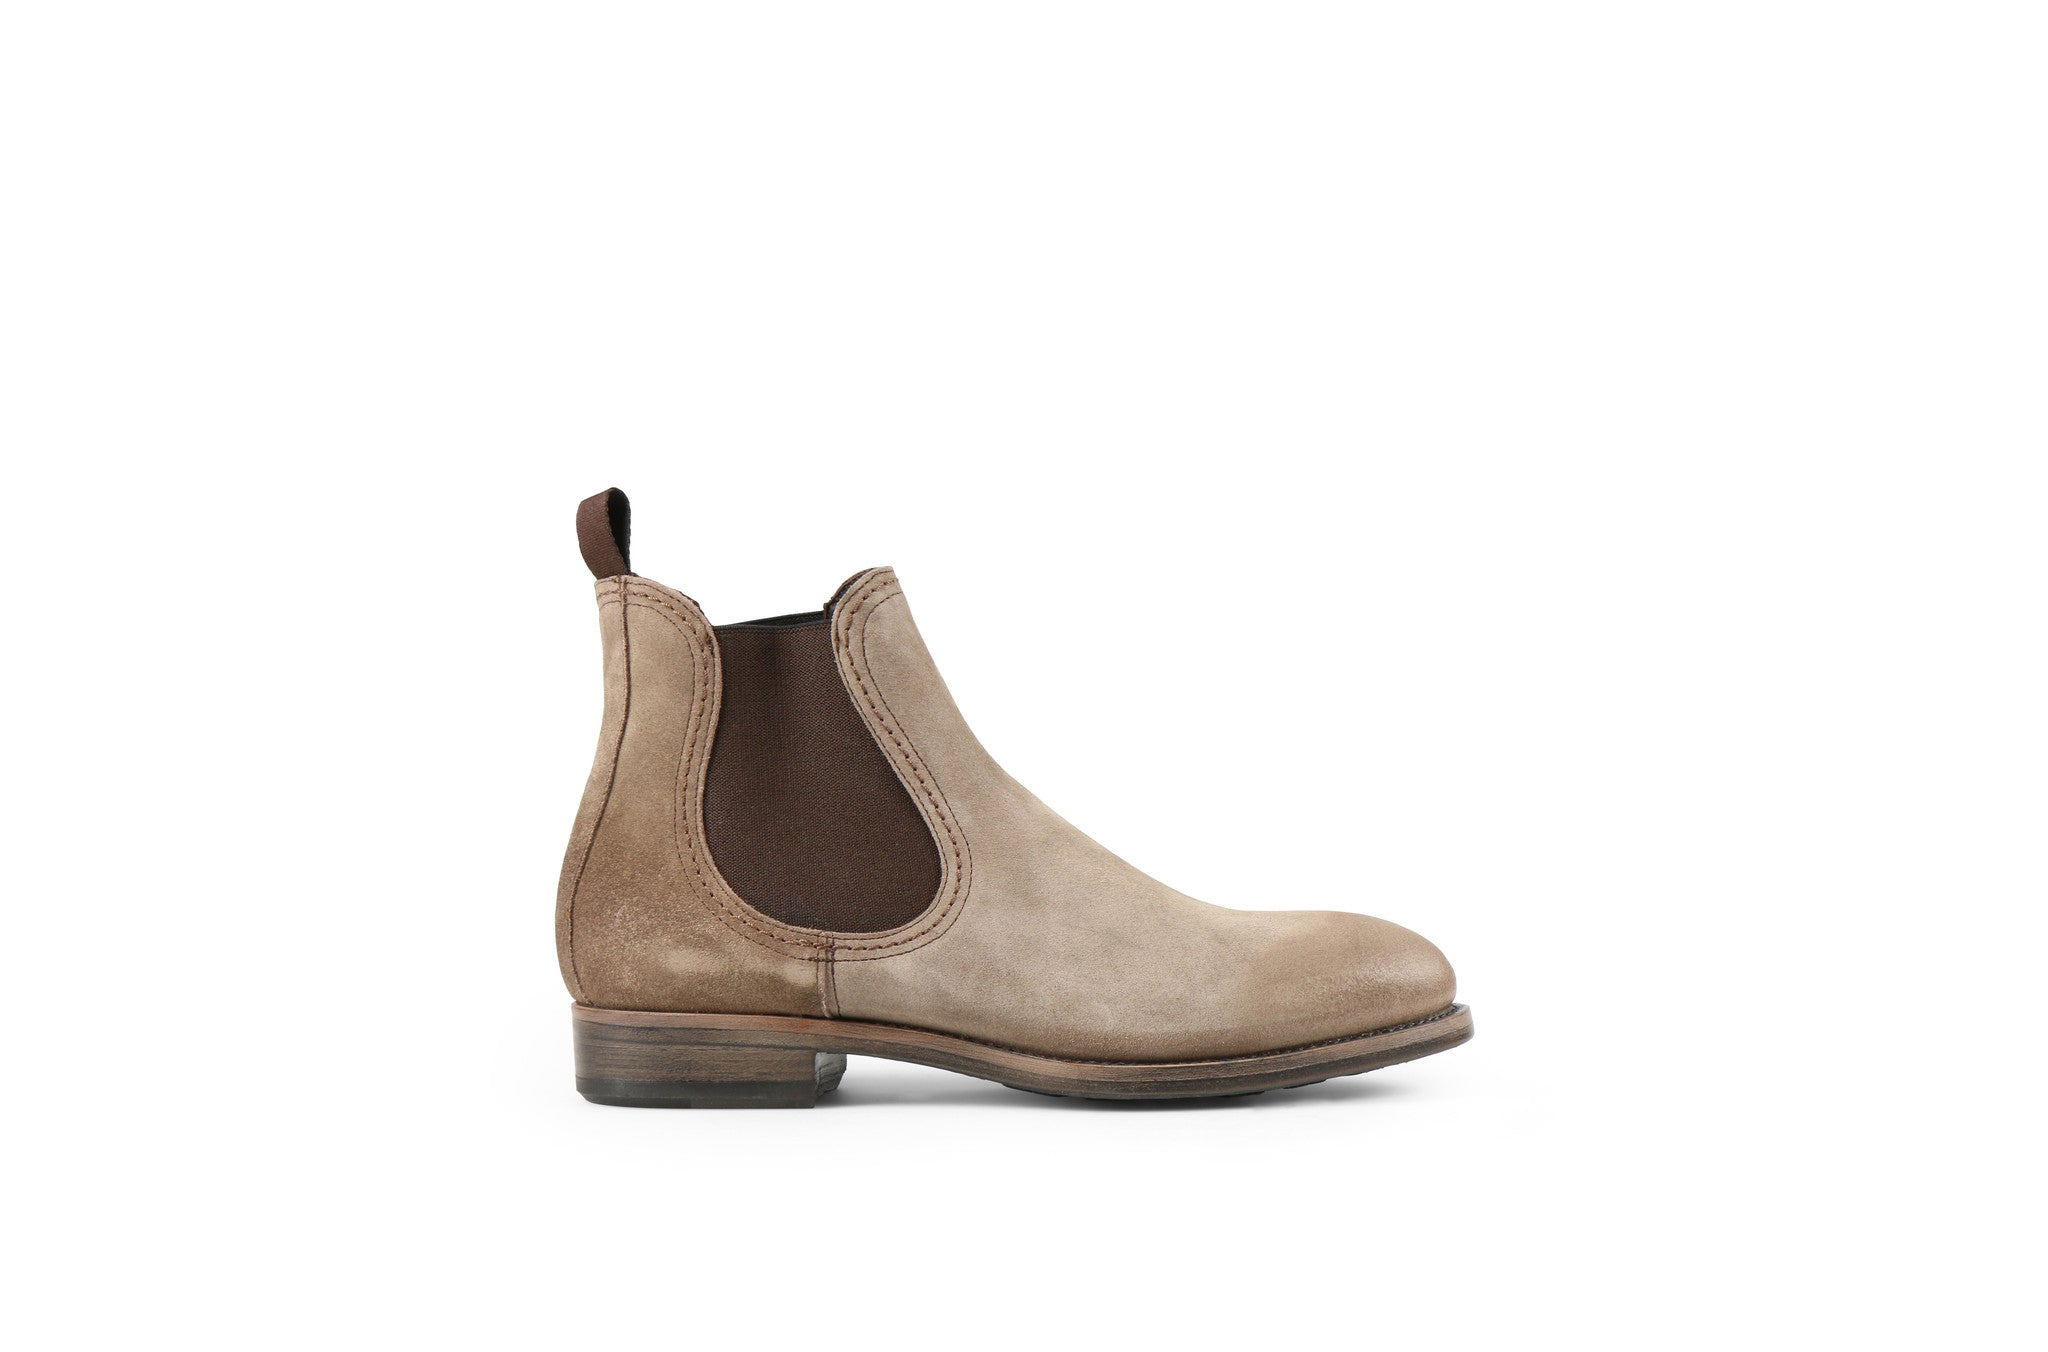 Hanoi Sand Suede Leather Chelsea Boots